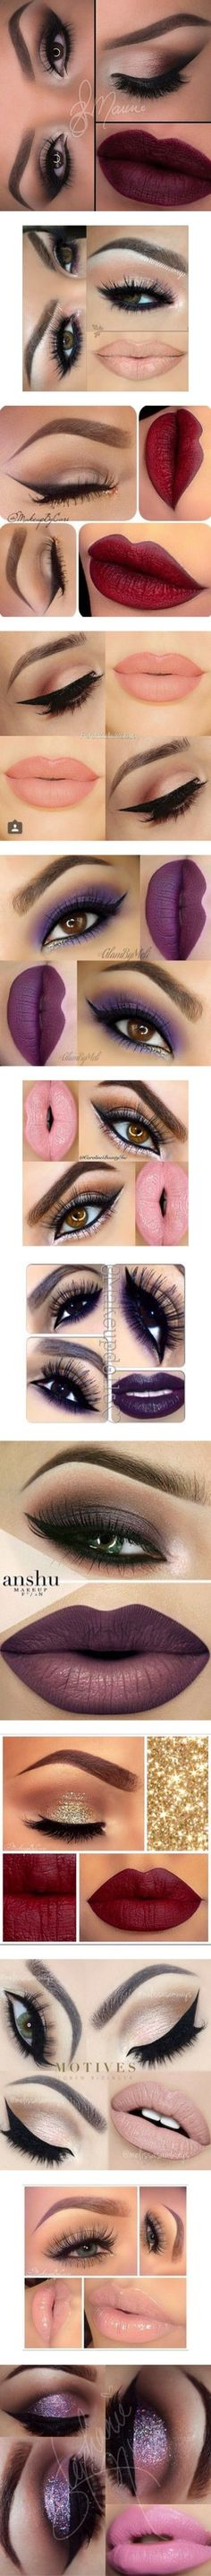 Make Up by dorastyles-clxiv on Polyvore featuring makeup, beauty products, eye makeup, beauty, lipstick, eyes, lips, lip makeup, maquiagem and face makeup